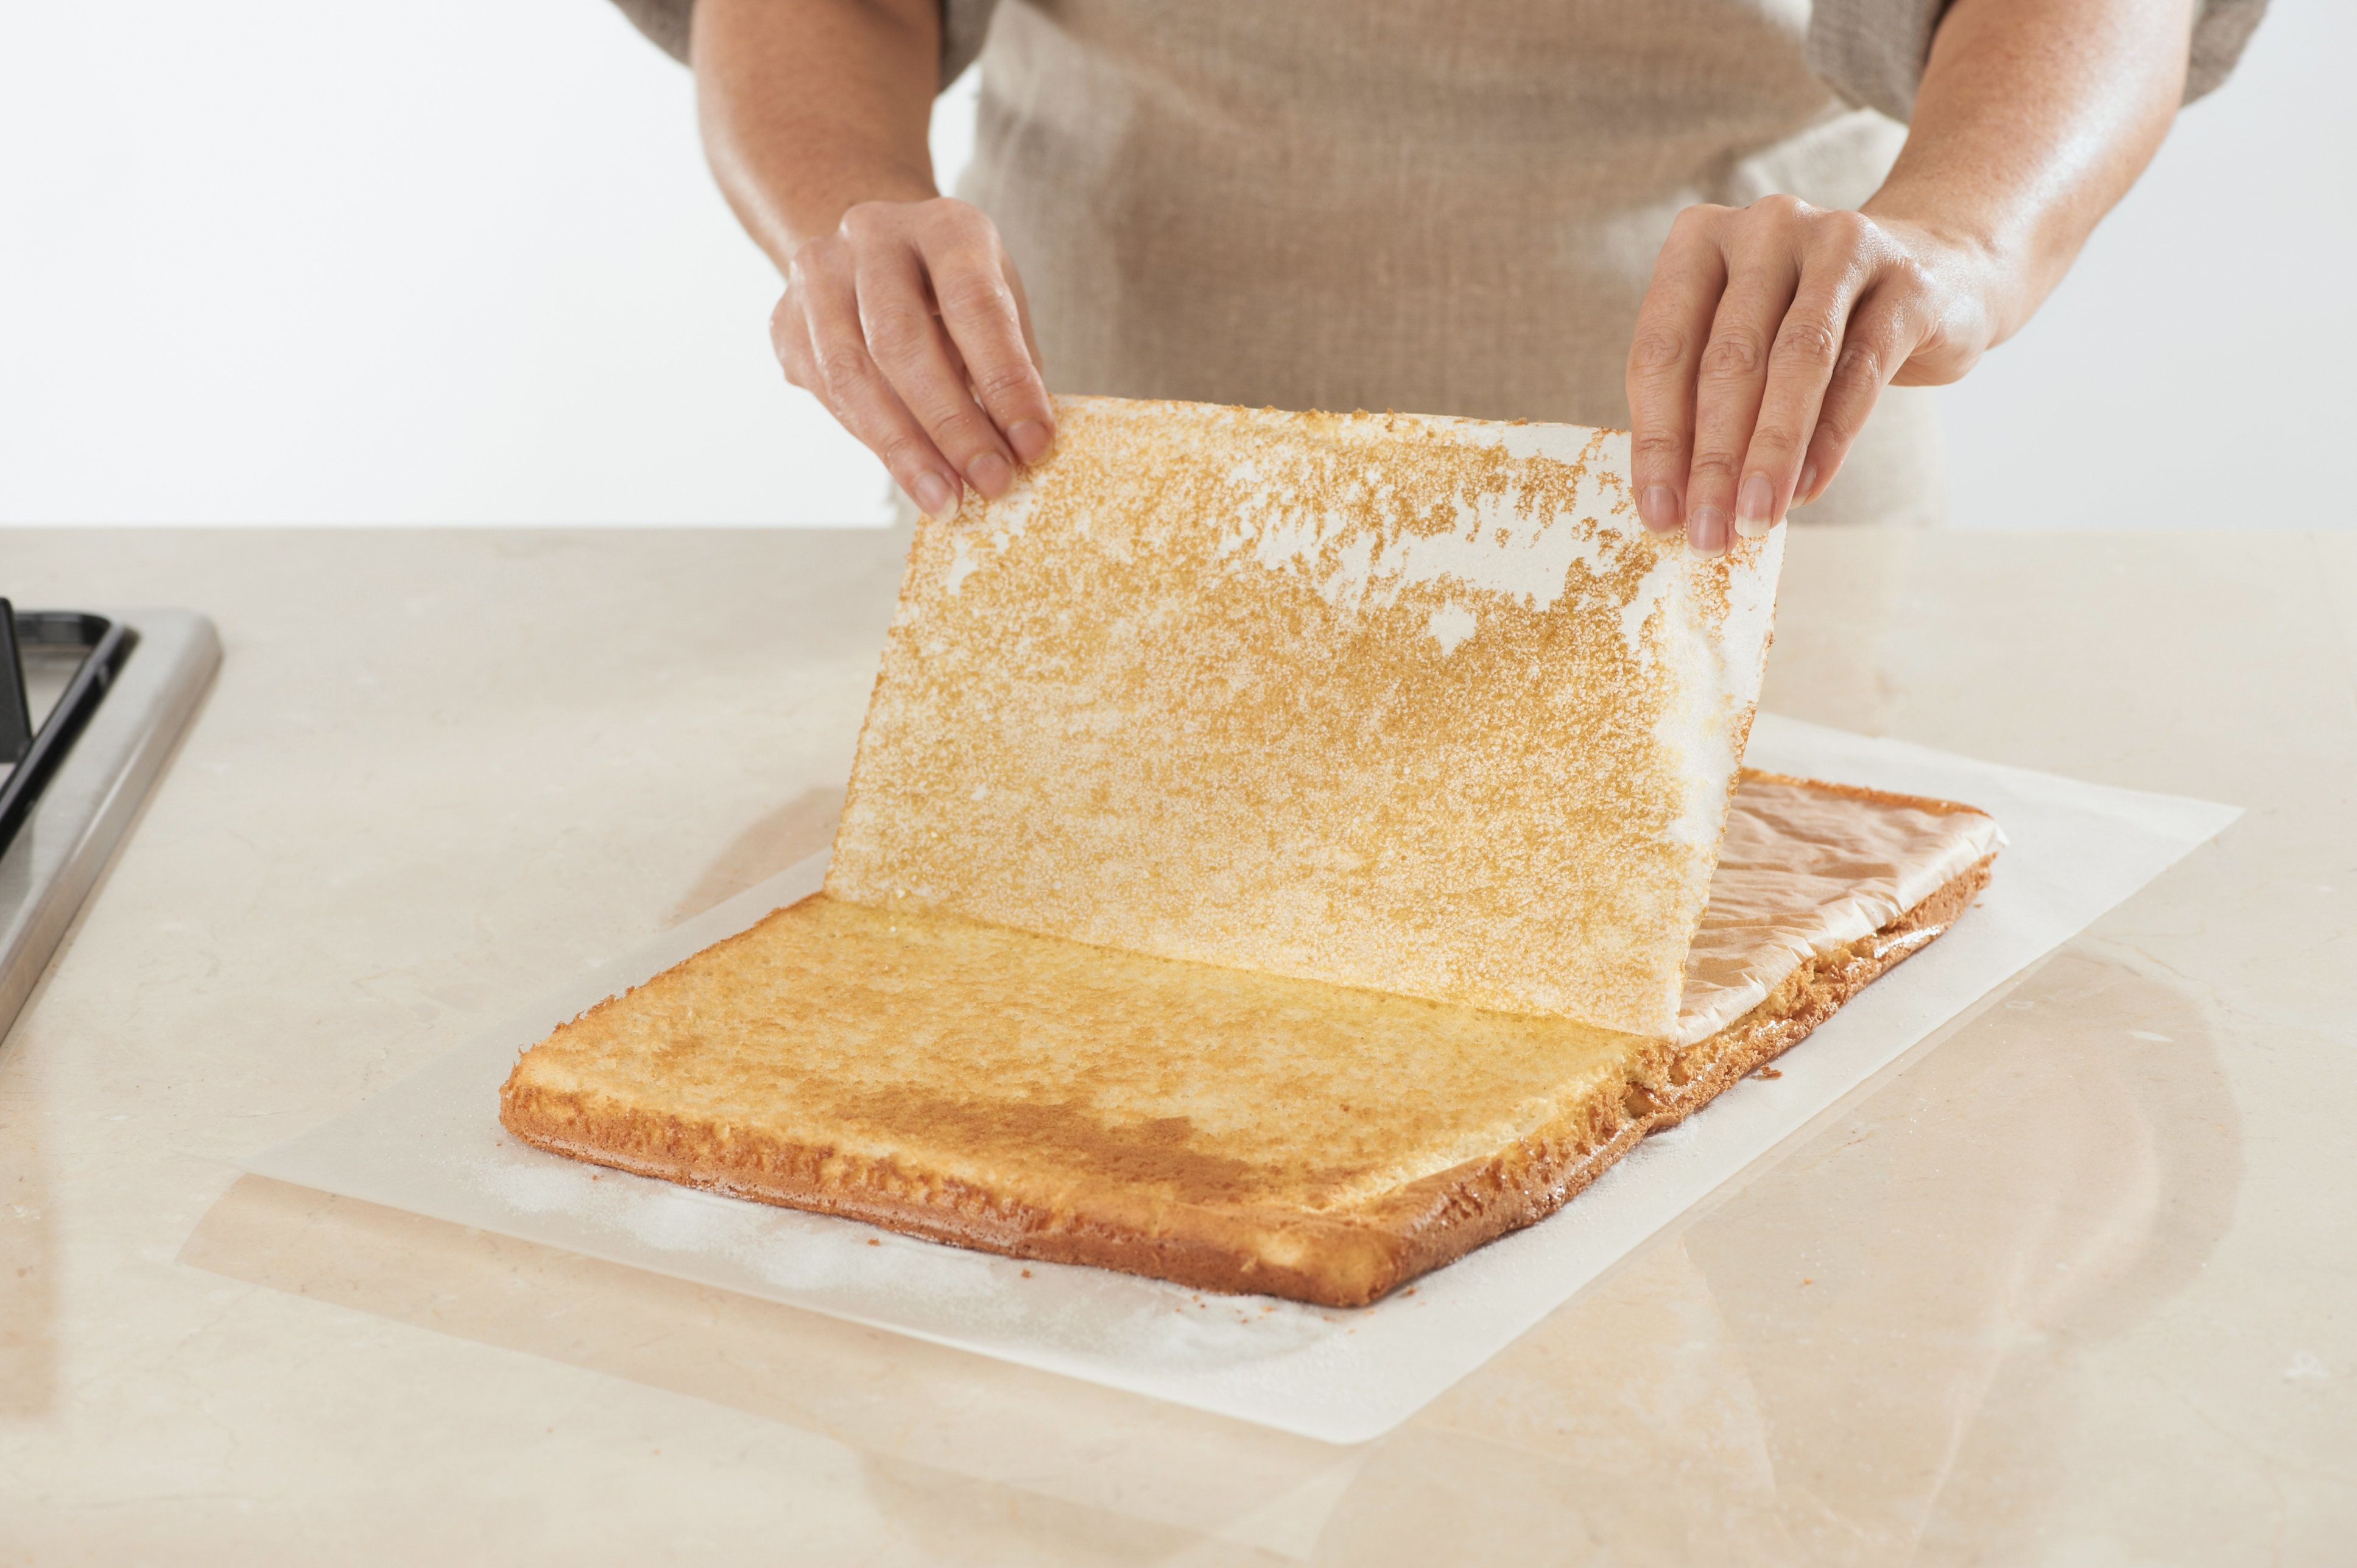 9 genius uses for wax paper desserts wax paper cake hacks